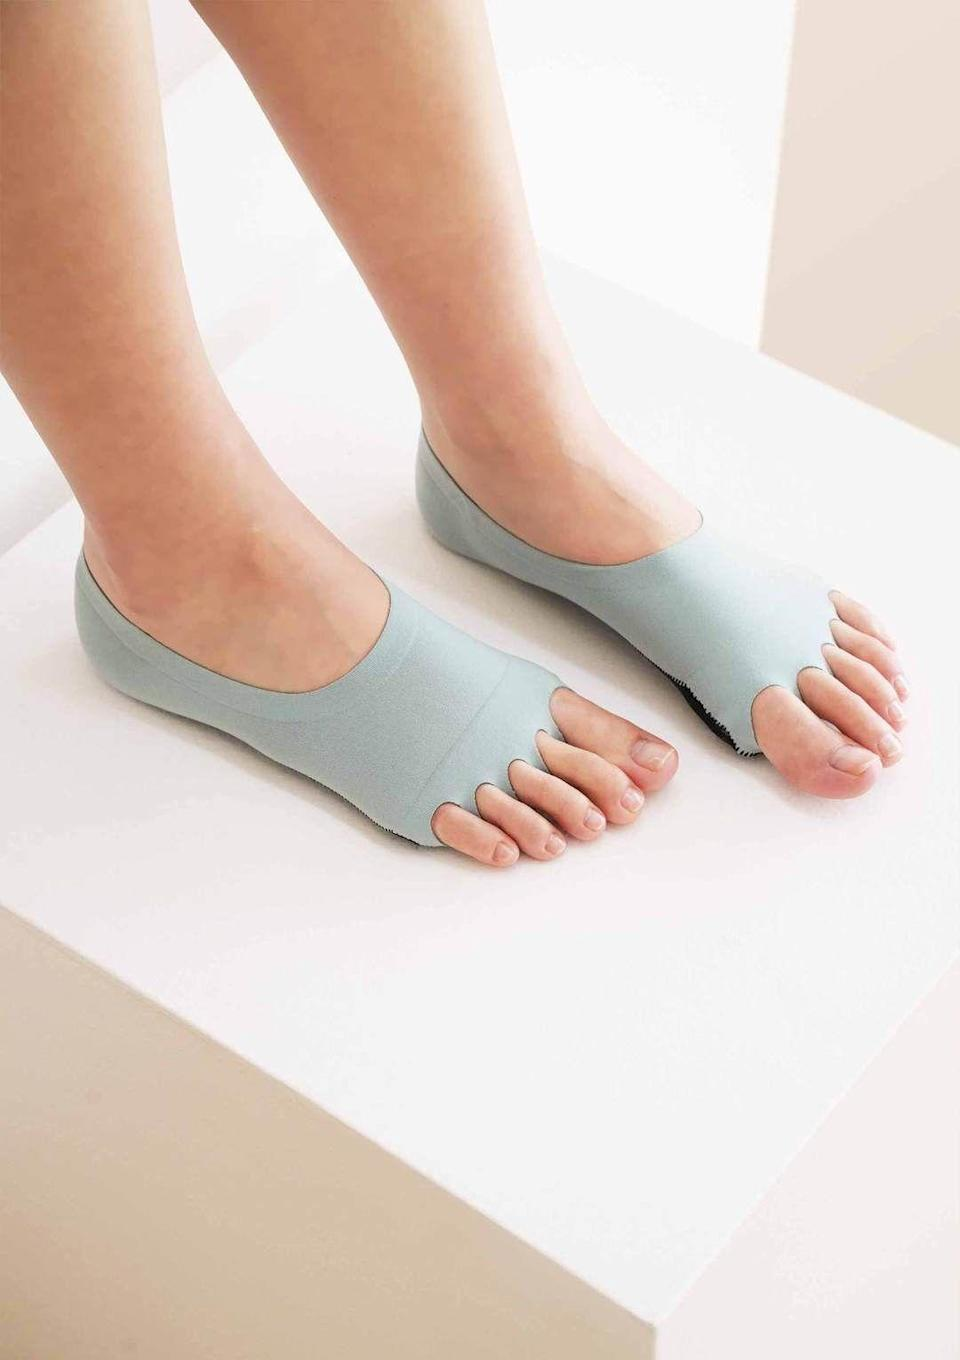 """<p><strong>Ondo </strong></p><p>ondo.com</p><p><strong>$24.00</strong></p><p><a href=""""https://ondo.com/products/yoga-socks-slate-grey?variant=39439041265749"""" rel=""""nofollow noopener"""" target=""""_blank"""" data-ylk=""""slk:Shop Now"""" class=""""link rapid-noclick-resp"""">Shop Now</a></p><p>One thing is clear: This is the sock to buy in bulk and stuff every barre and Pilates junkie's stocking with.</p>"""